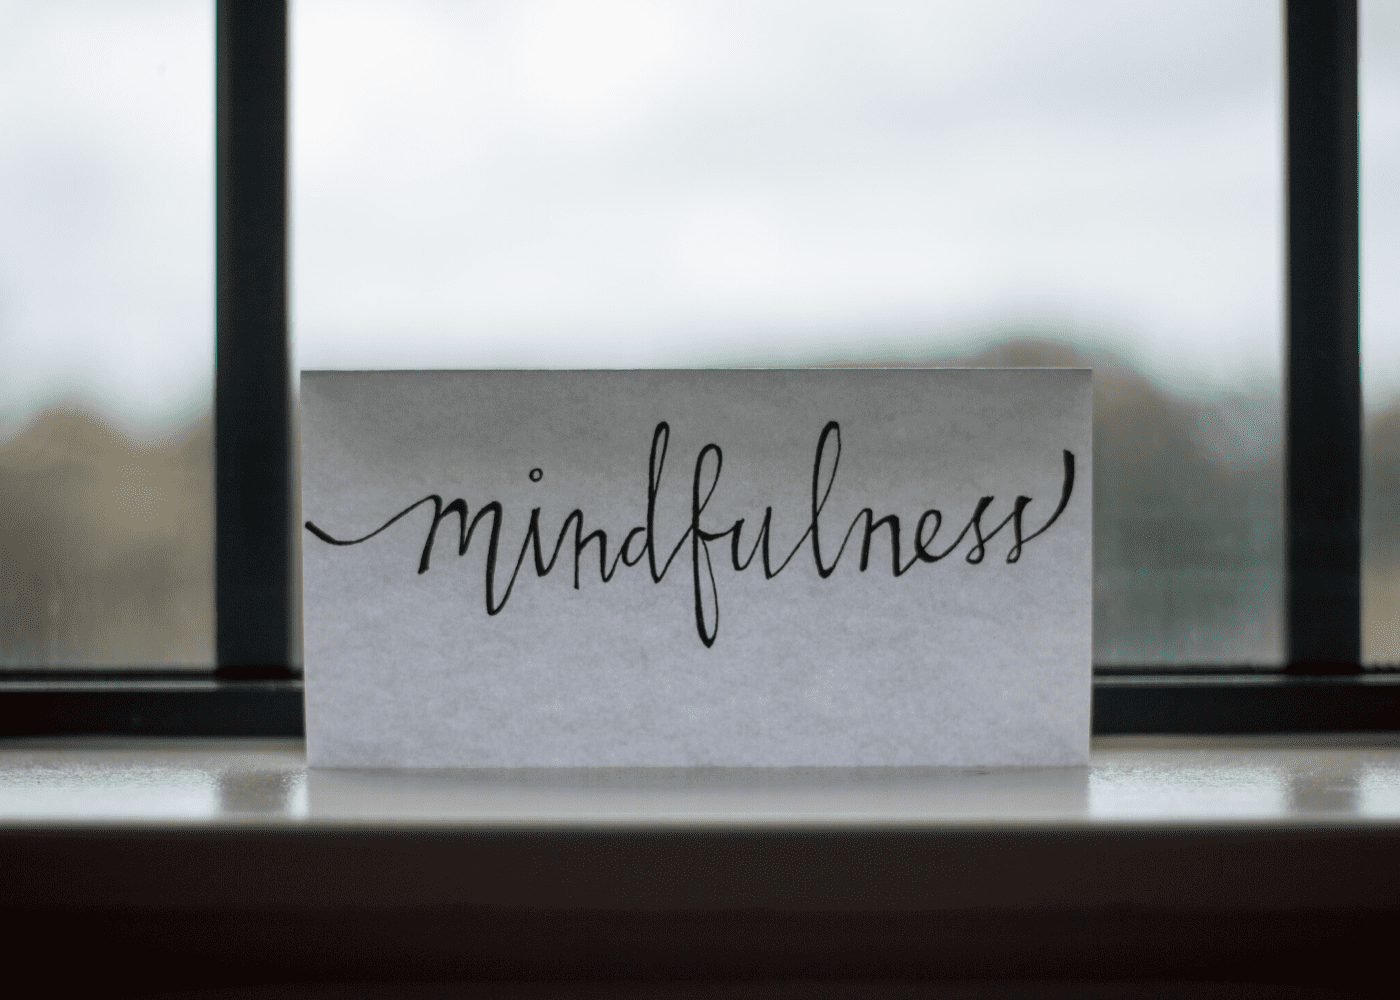 Relaxation station: Mindfulness apps to download for a better mind and body